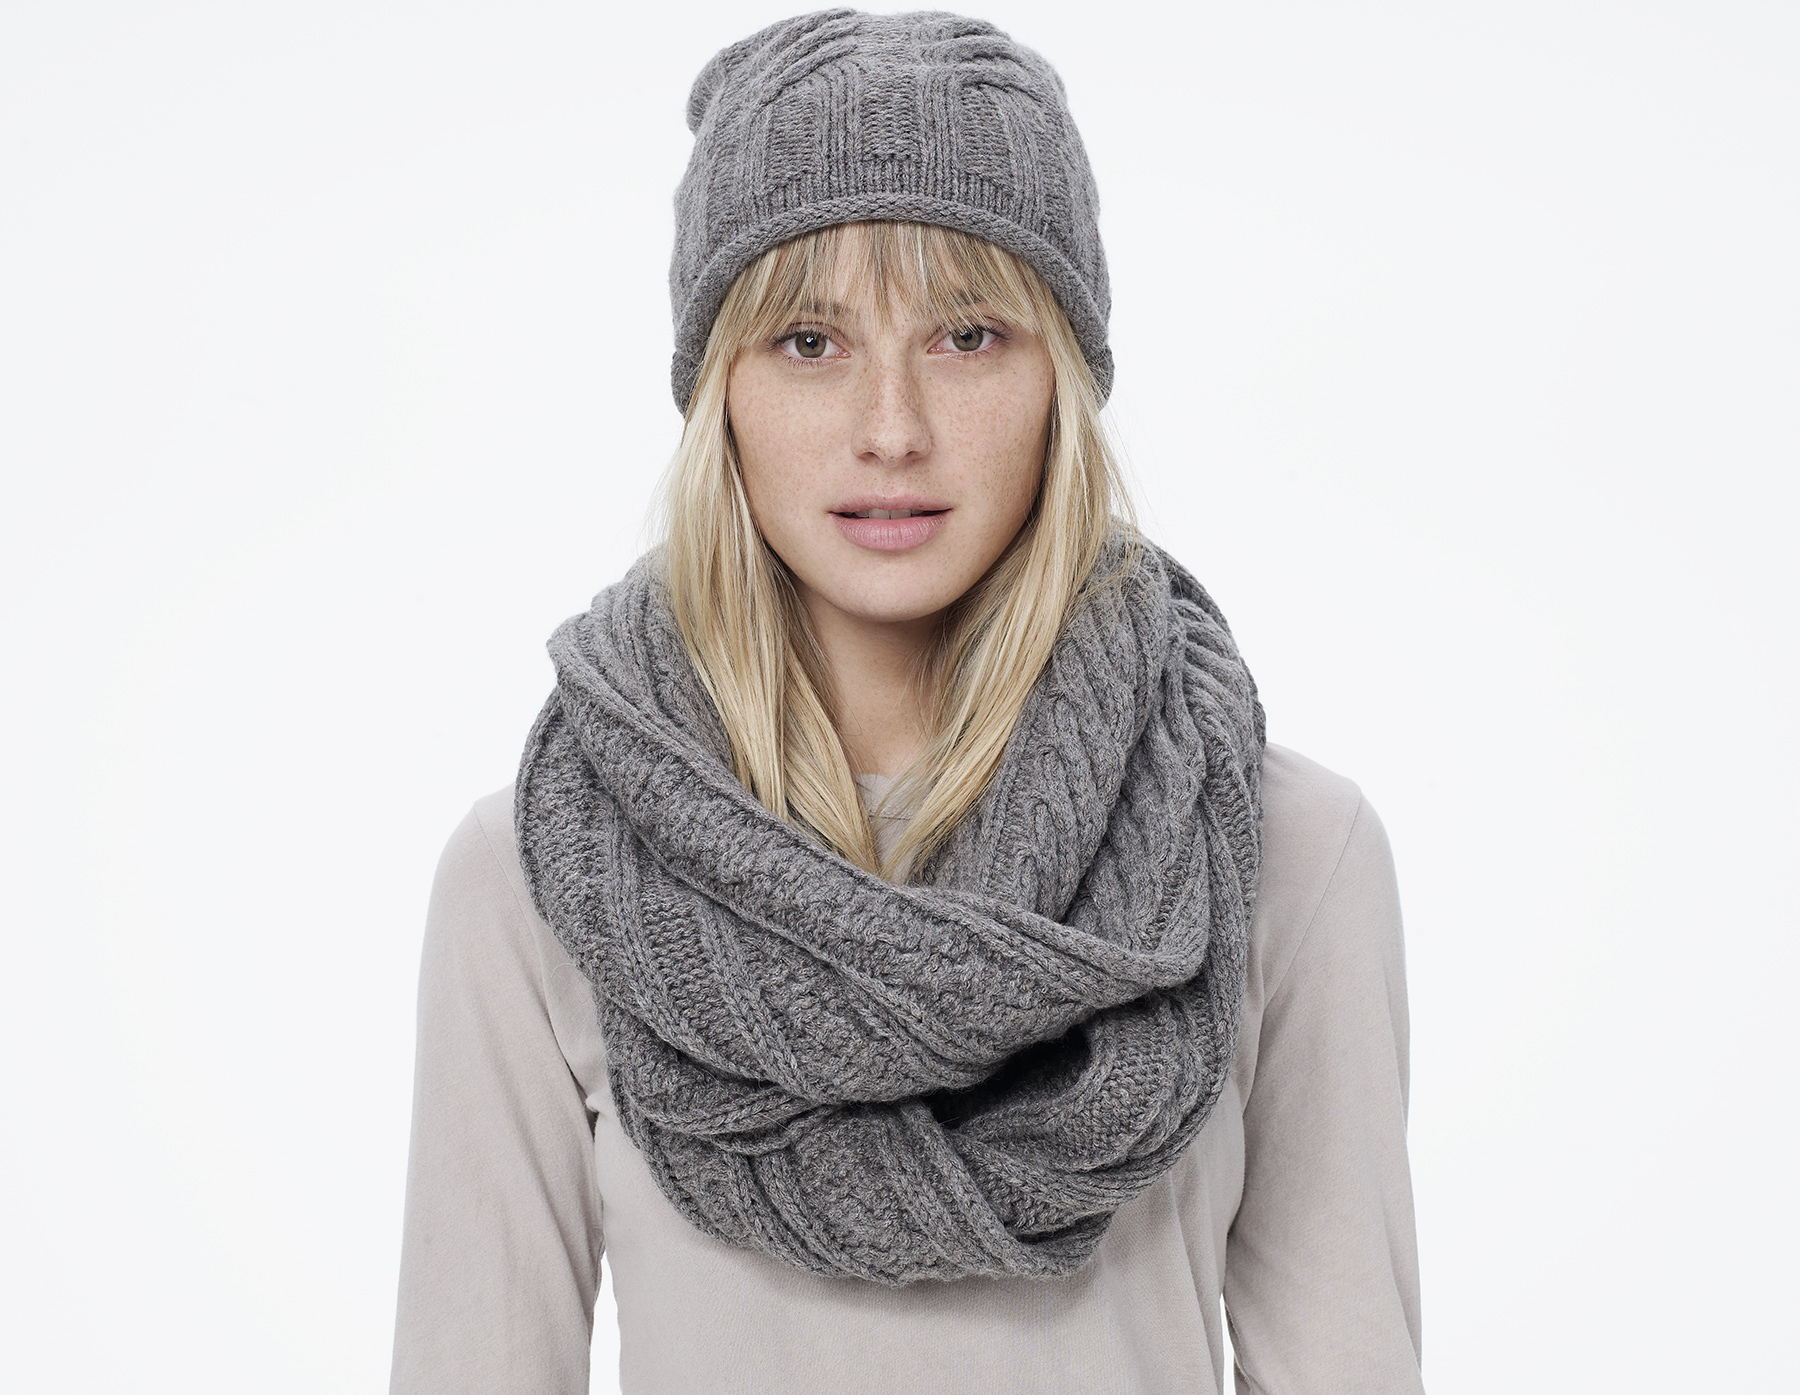 Cable Knit Infinity Scarf Knitting Pattern : James Perse Cable Knit Infinity Scarf in Gray (Stonehenge ...